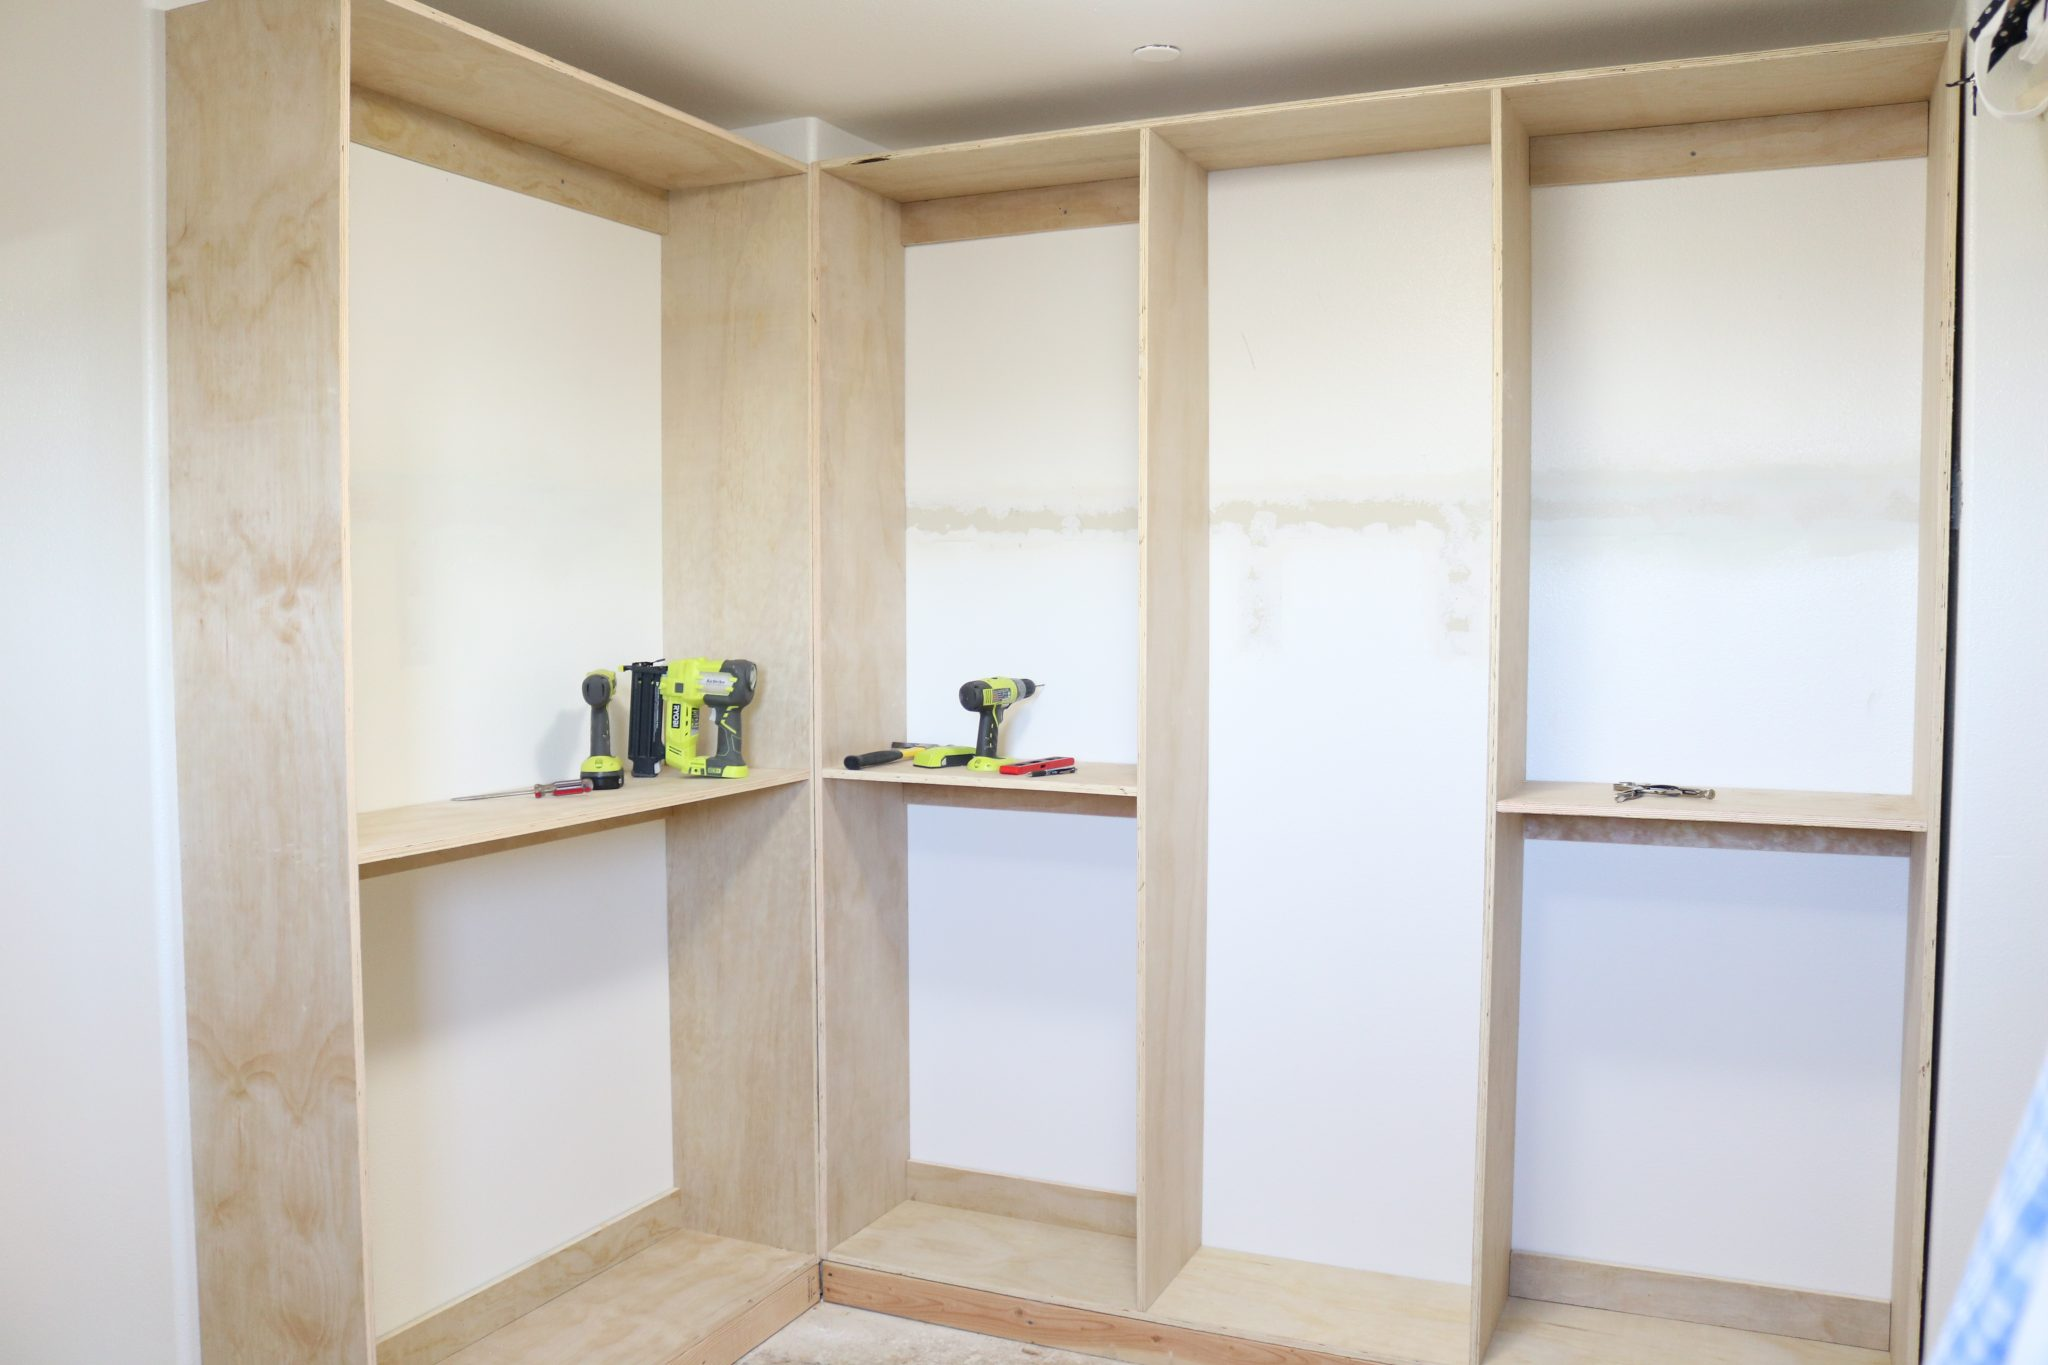 DIY Custom Master Closet: Part 2, The Build